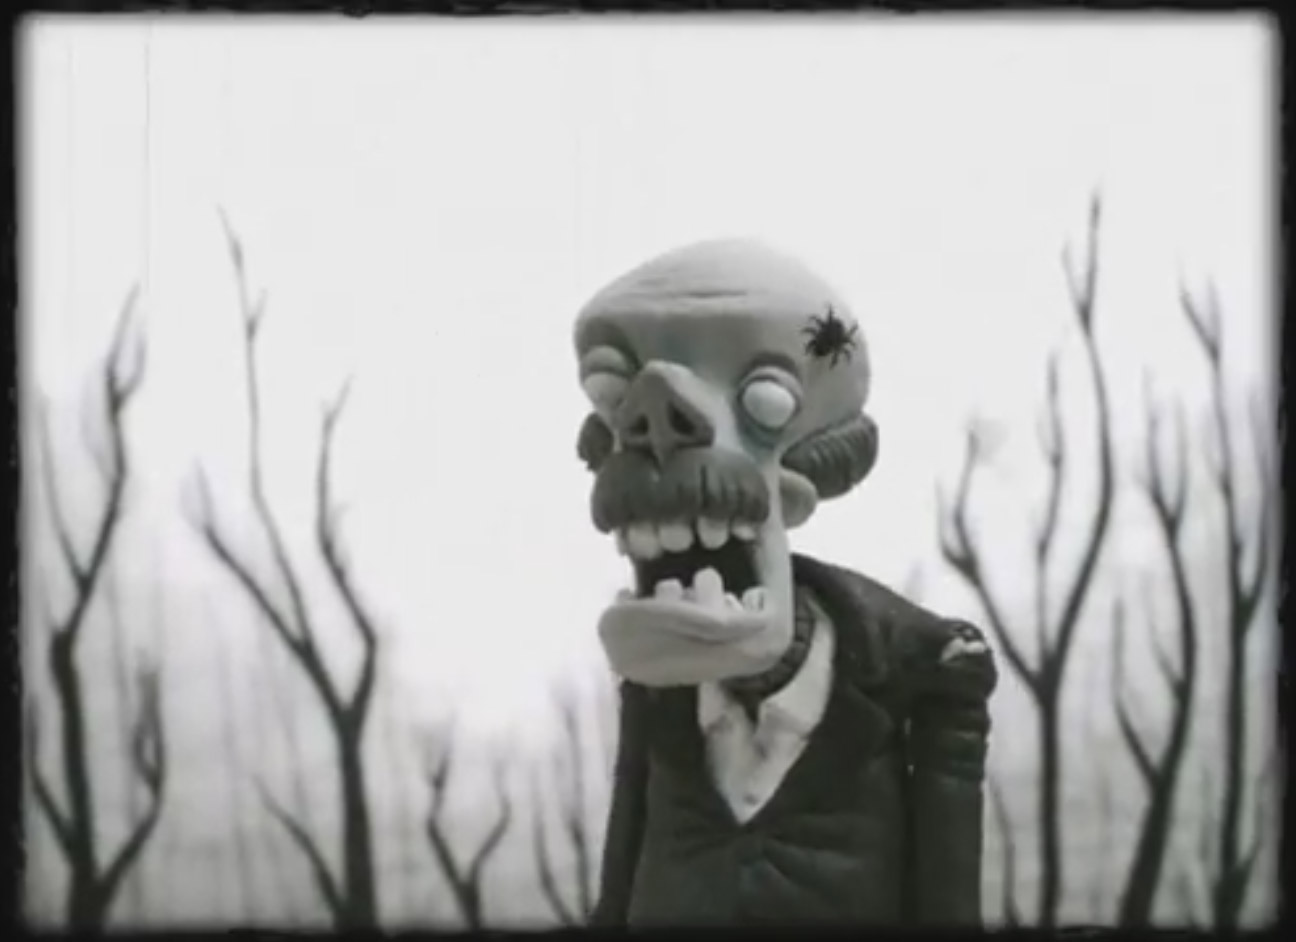 Spider vs the Living Dead stop motion animated short film for Halloween